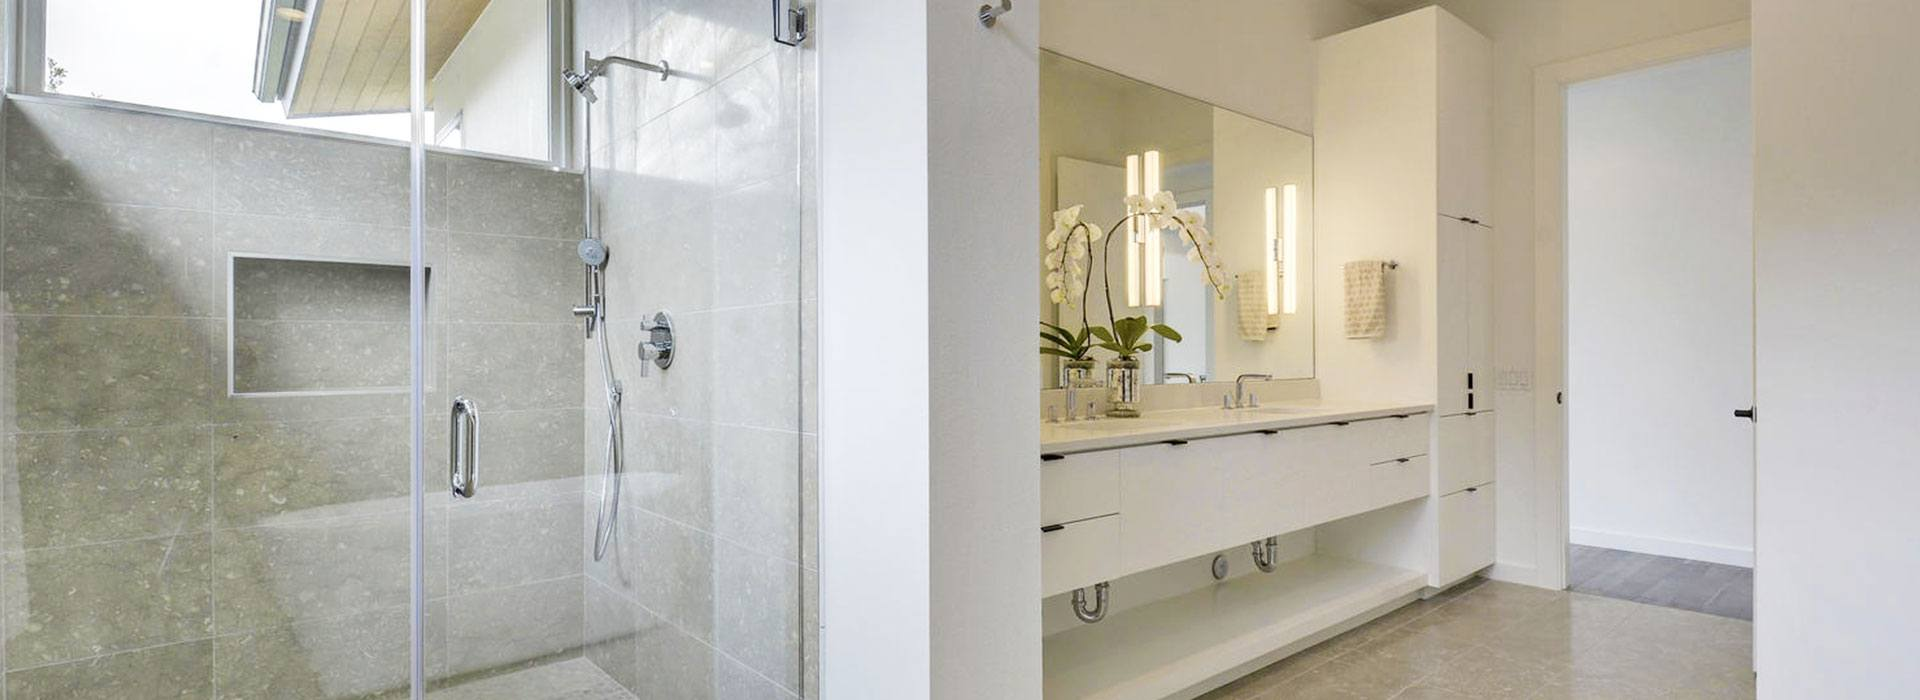 Shower Enclosures | Anchor-Ventana Glass Company | Austin Glass